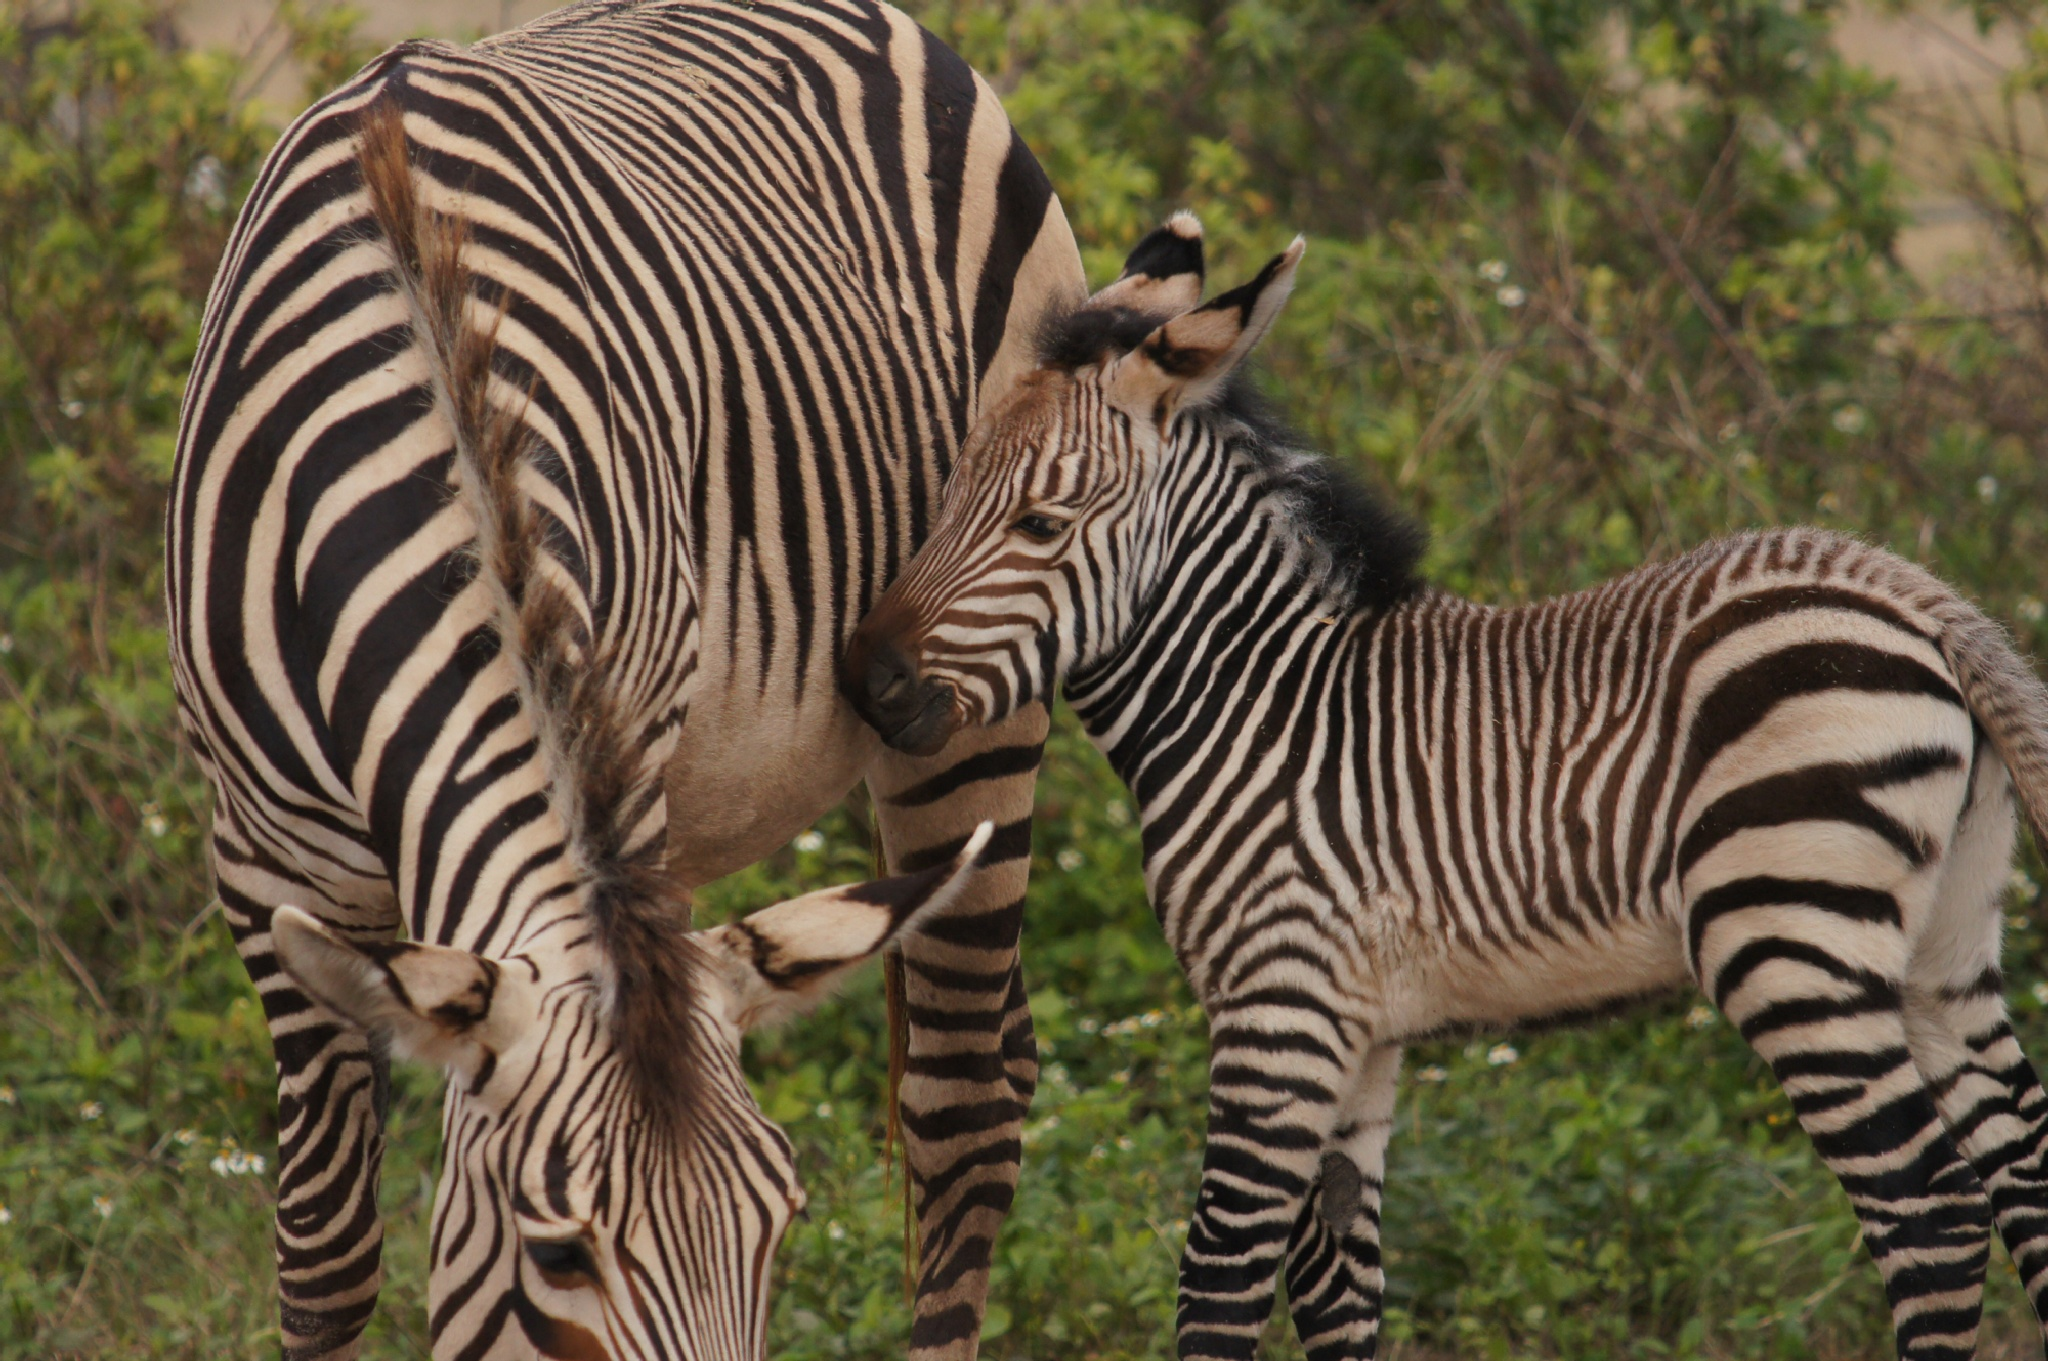 6 Day Old Zebra at Lowry Park Zoo  by Real_Images